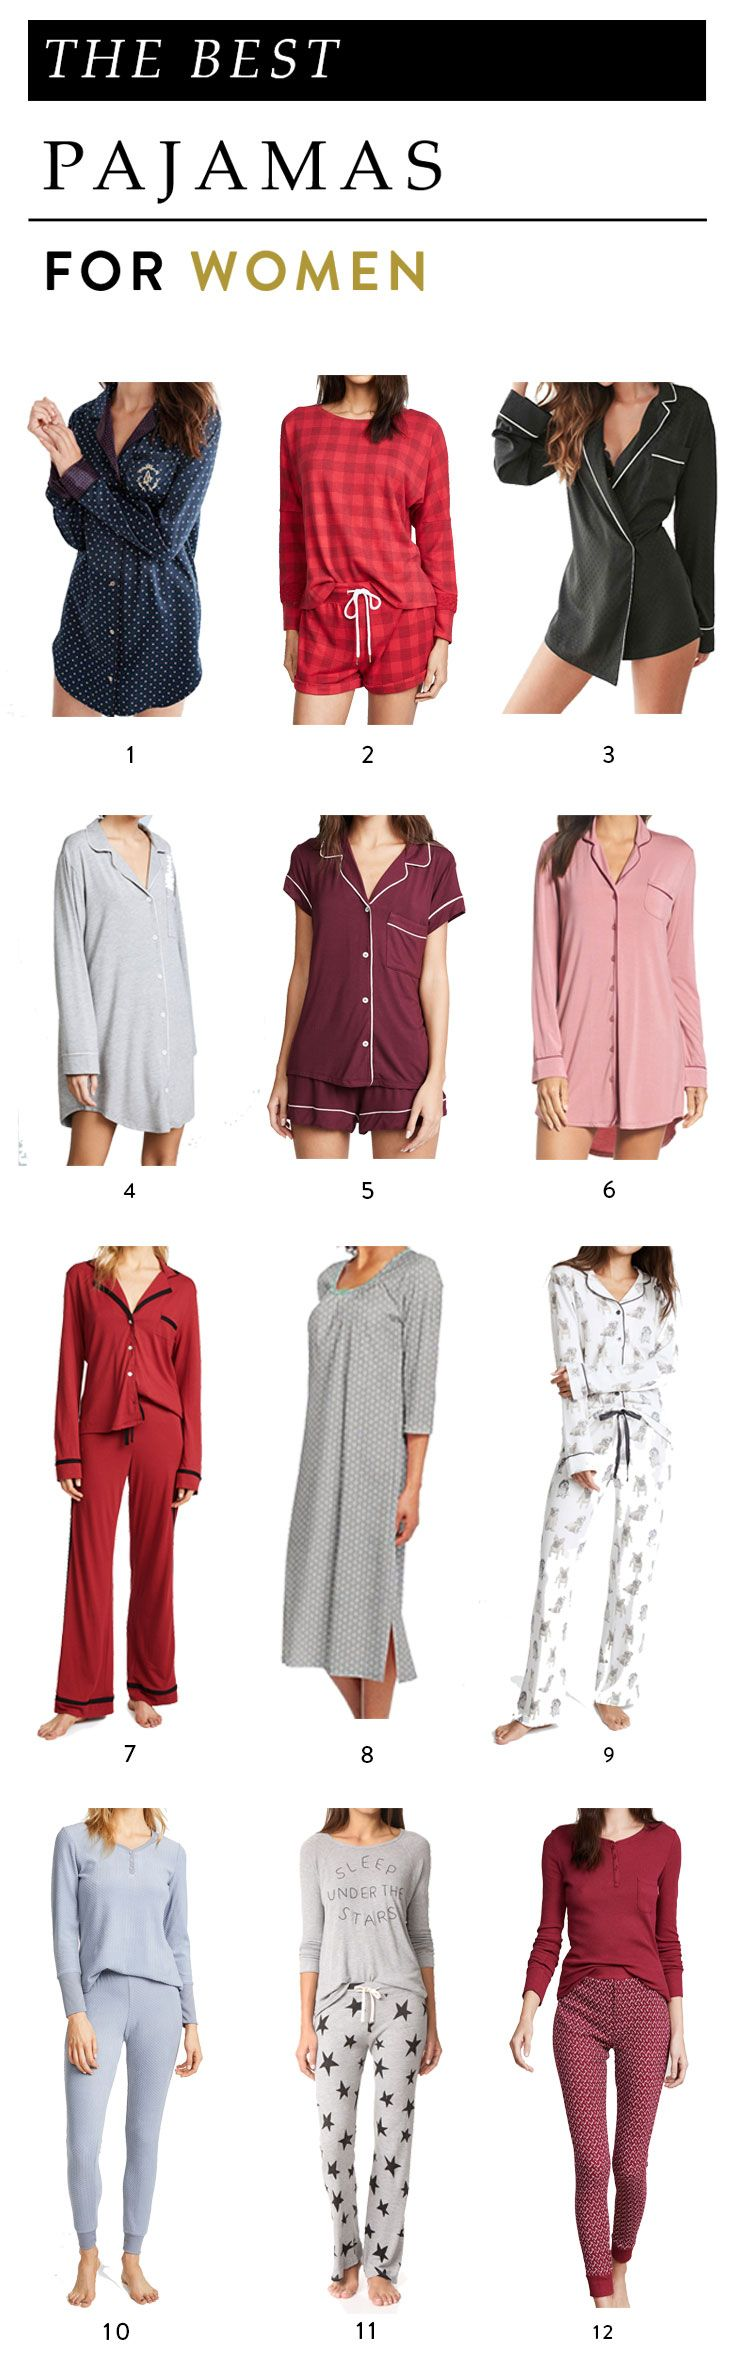 best pajamas, best cozy pajamas, pajamas women, pajamas for teens, pajamas women comfy, pajamas winter women, pjs and pancakes party christmas, pjs for women winter, holiday pjs, holiday pj party